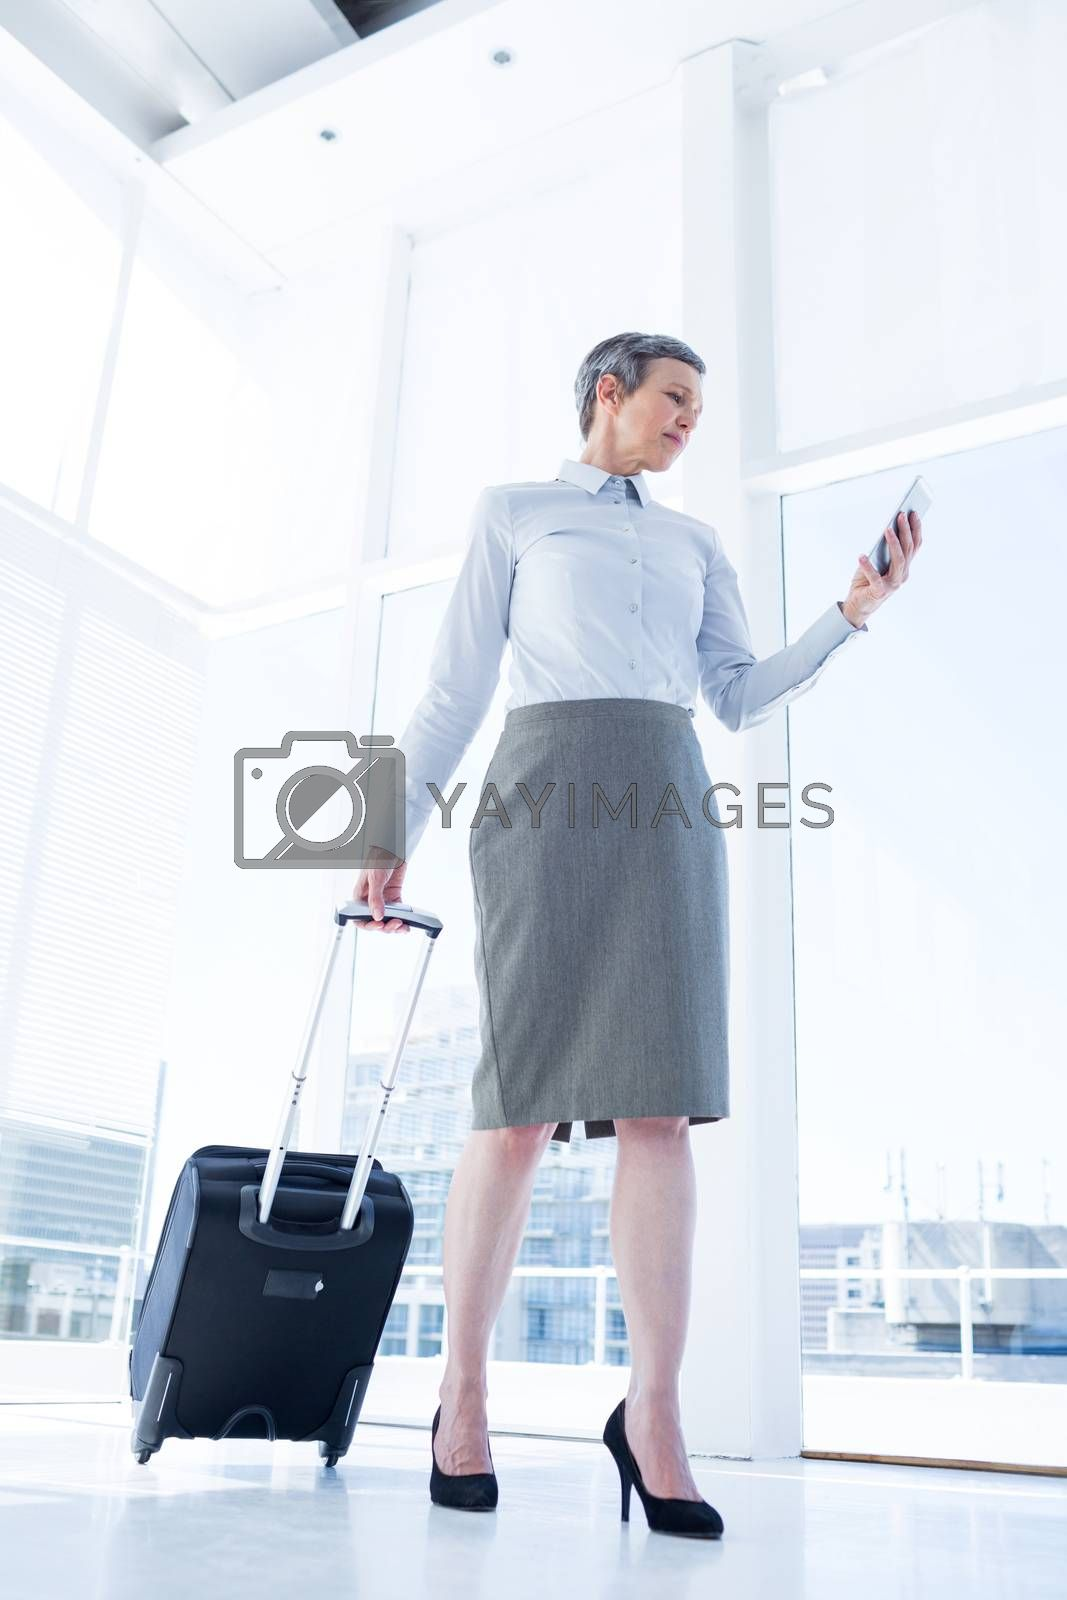 Royalty free image of Businesswoman holding smartphone in the office by Wavebreakmedia